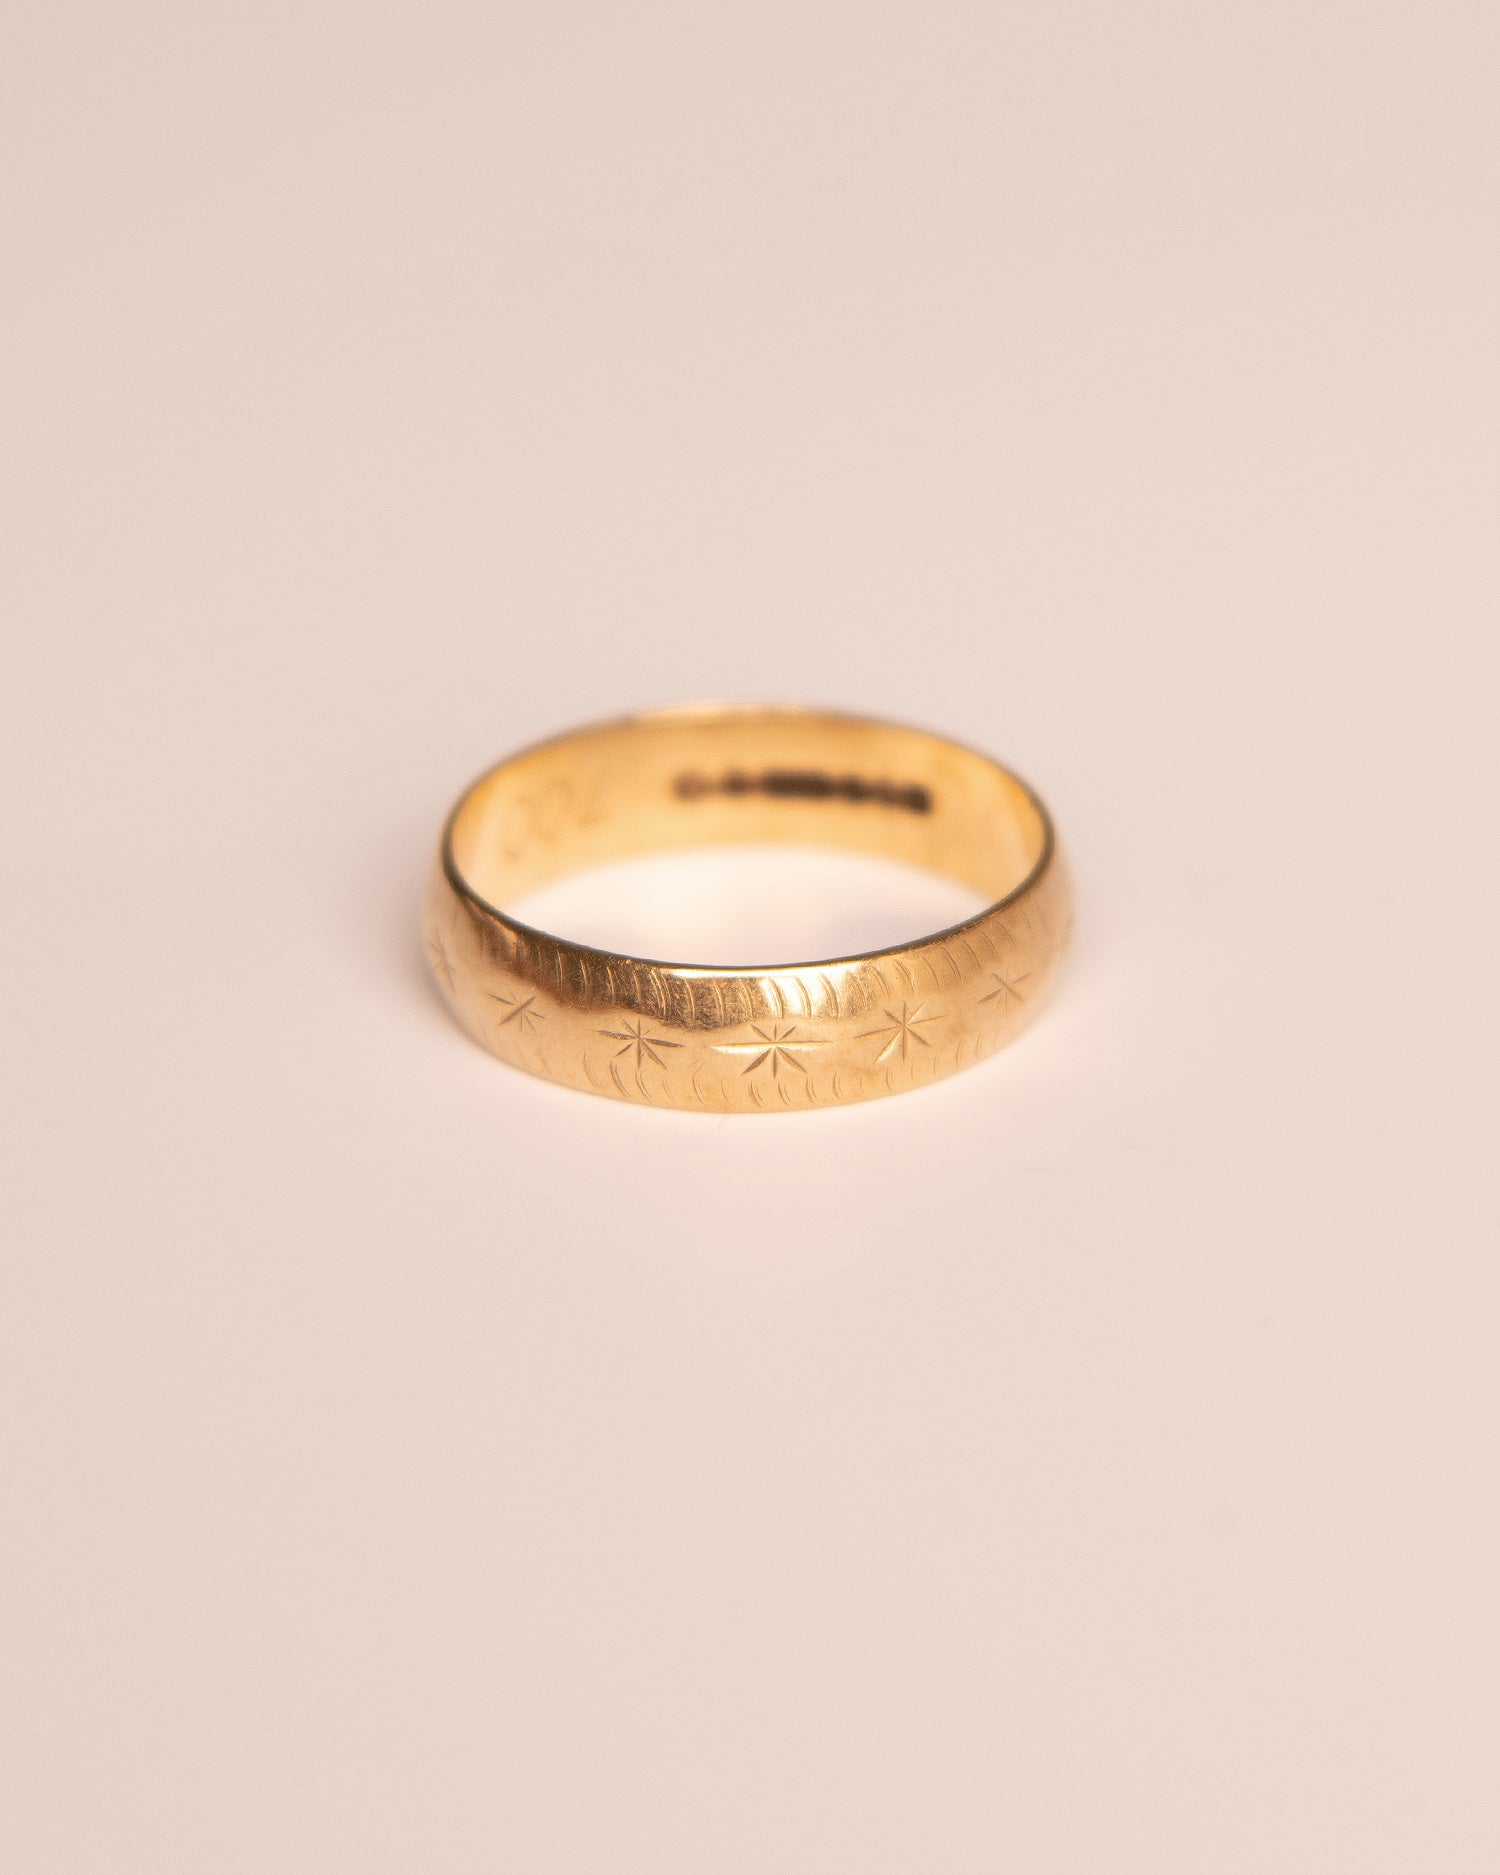 Image of Virginia 9ct Gold Vintage Band Ring